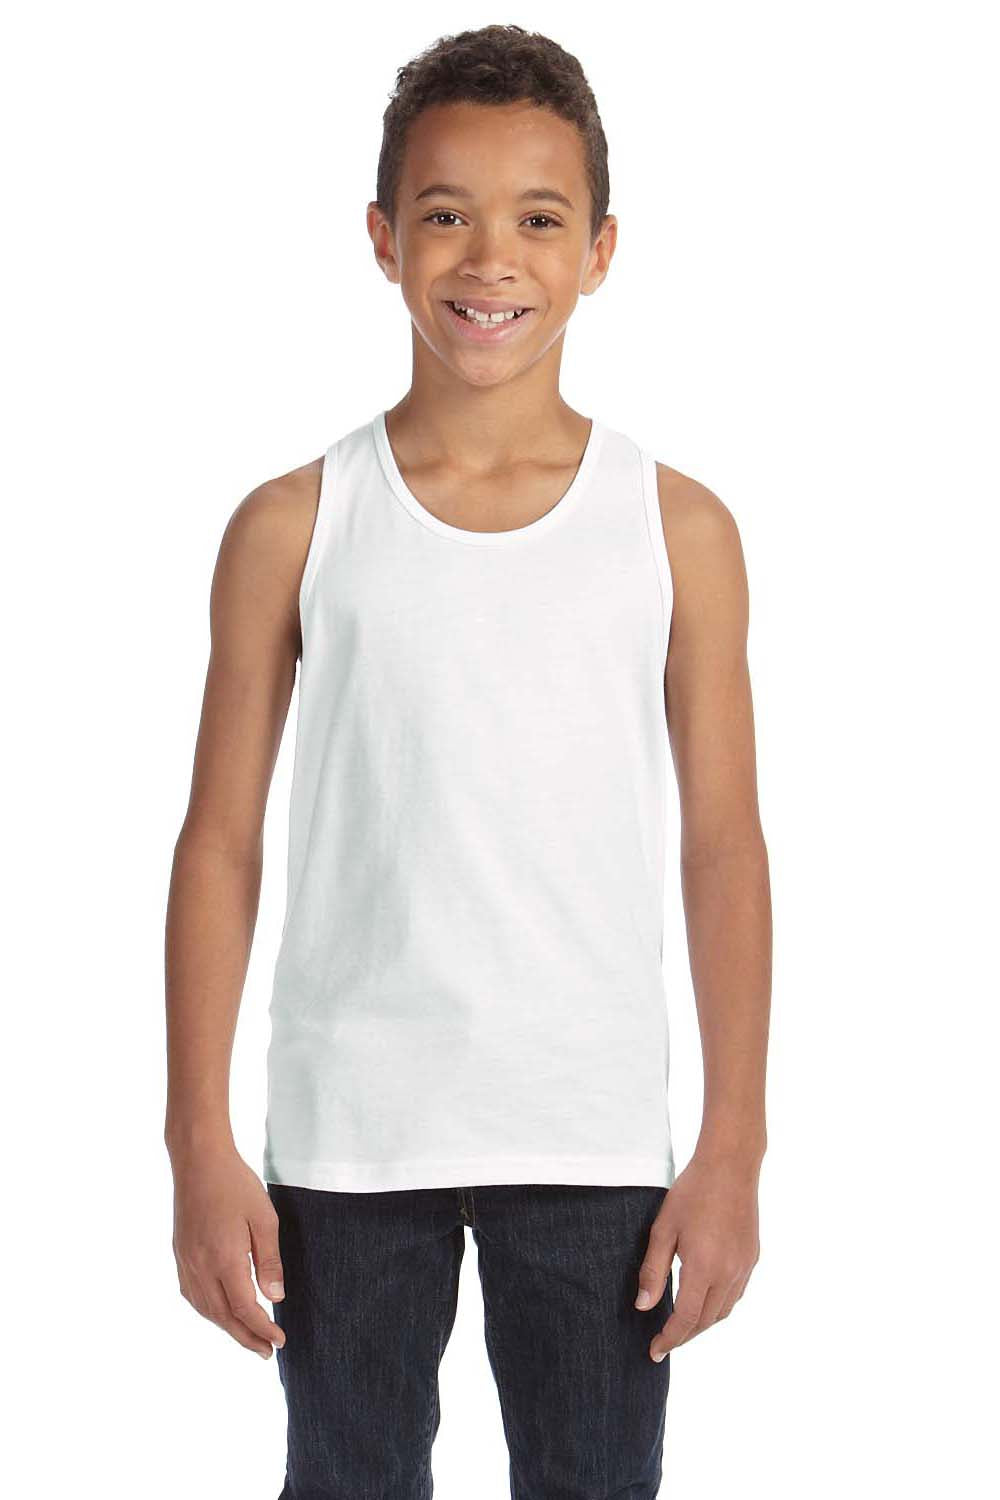 Bella + Canvas 3480Y Youth Jersey Tank Top White Front